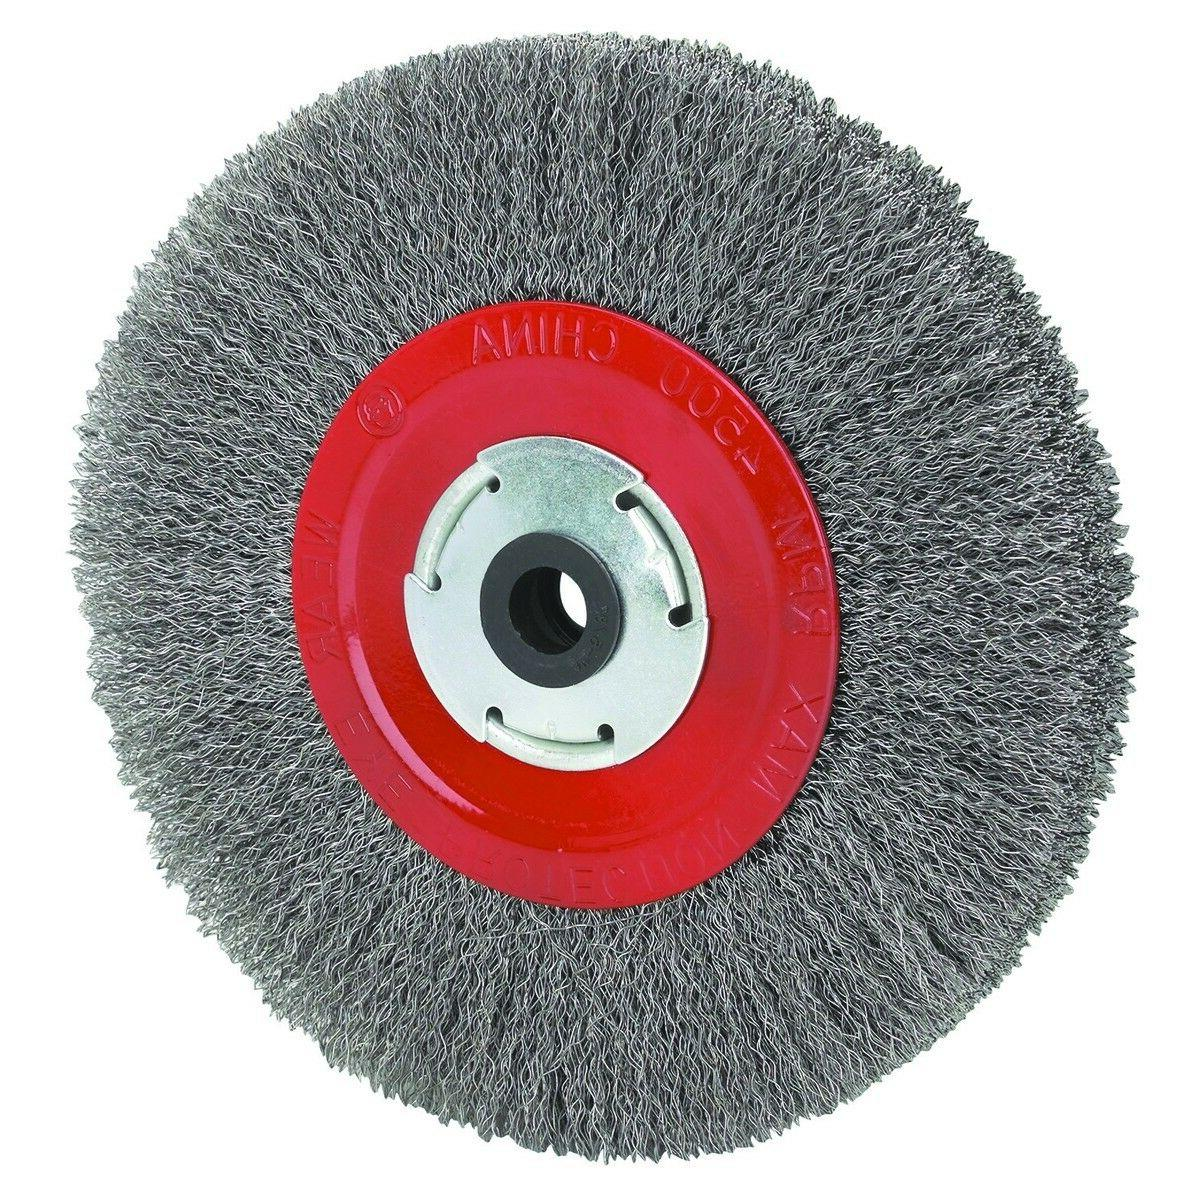 8 inch round wire wheel for bench